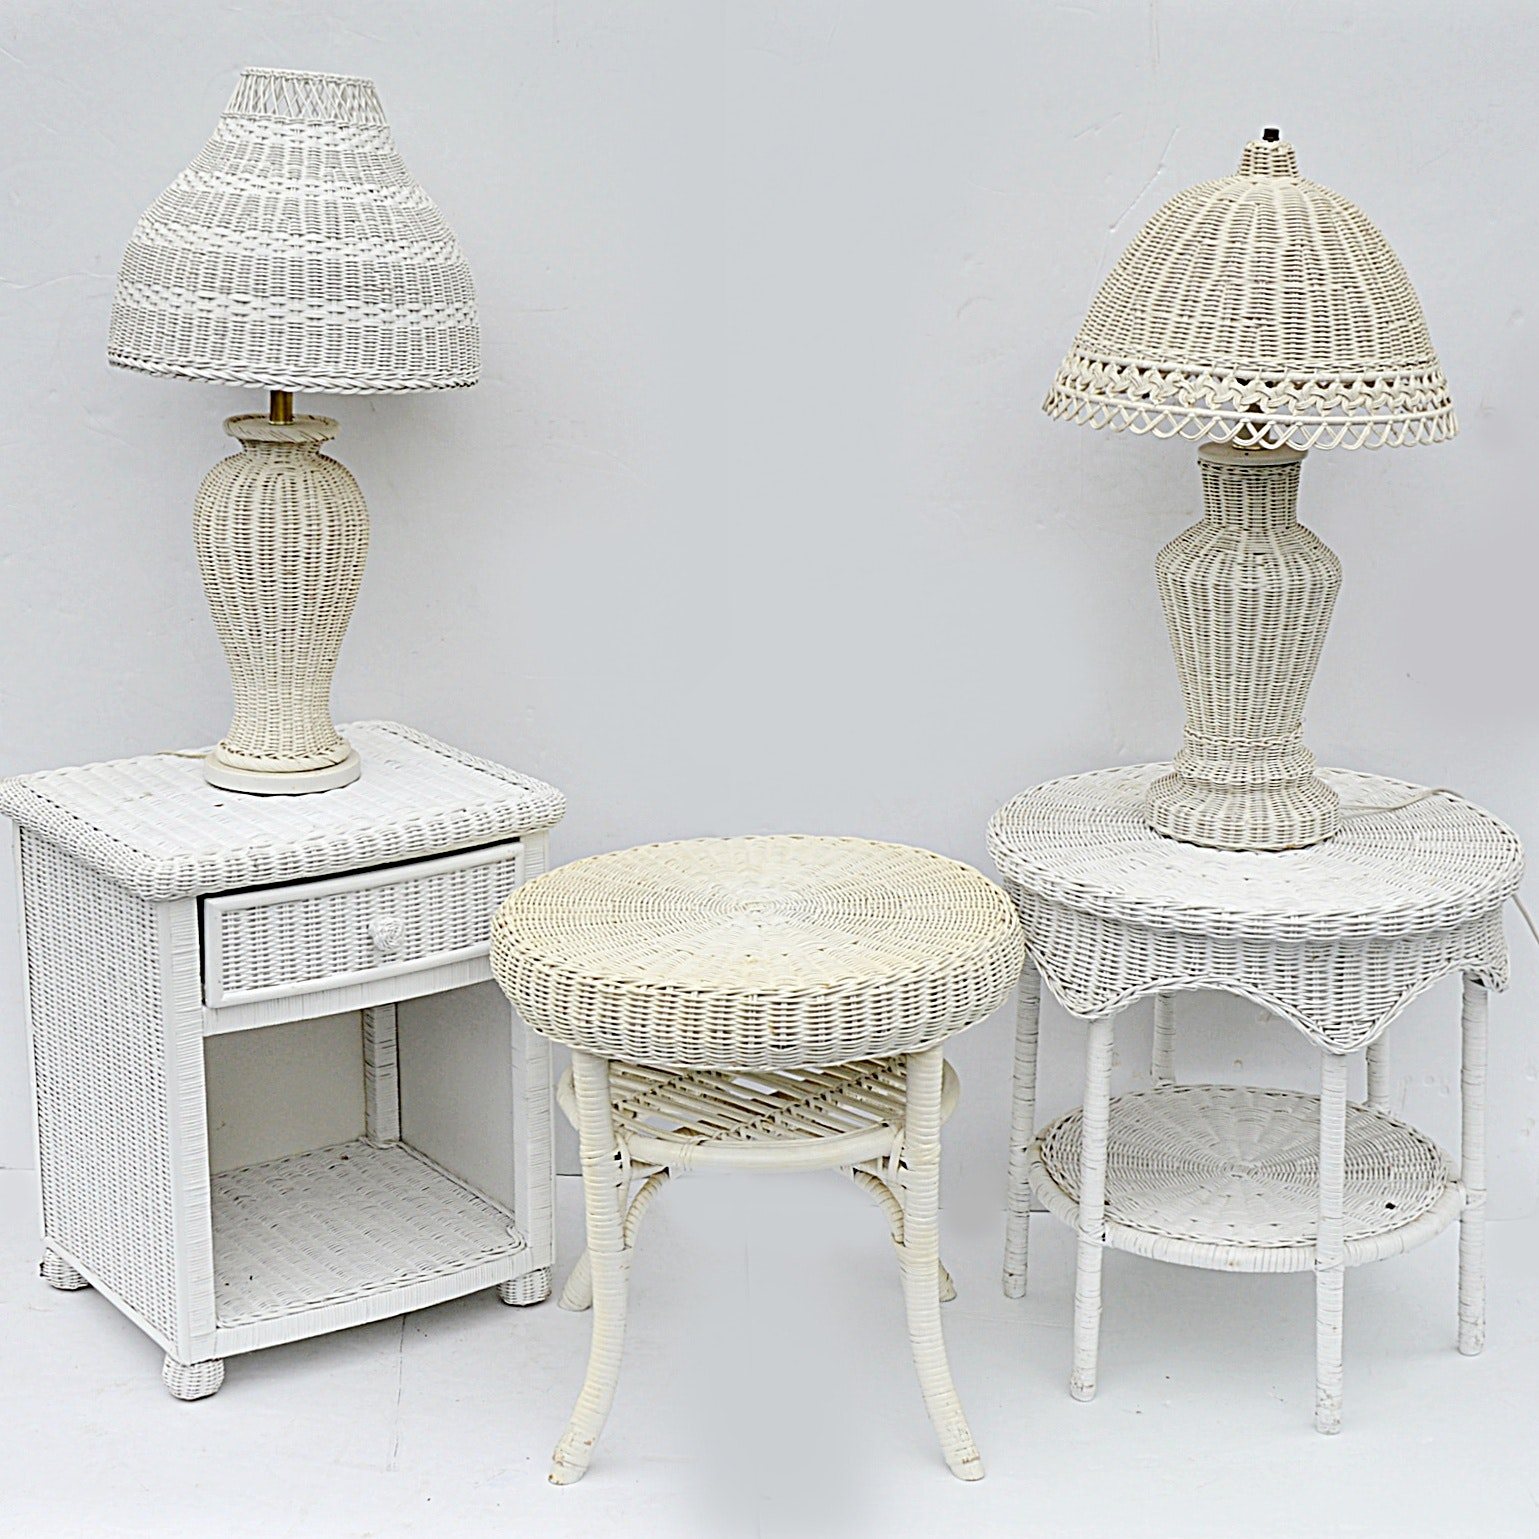 Three White Wicker Side Tables and Two Wicker Table Lamps